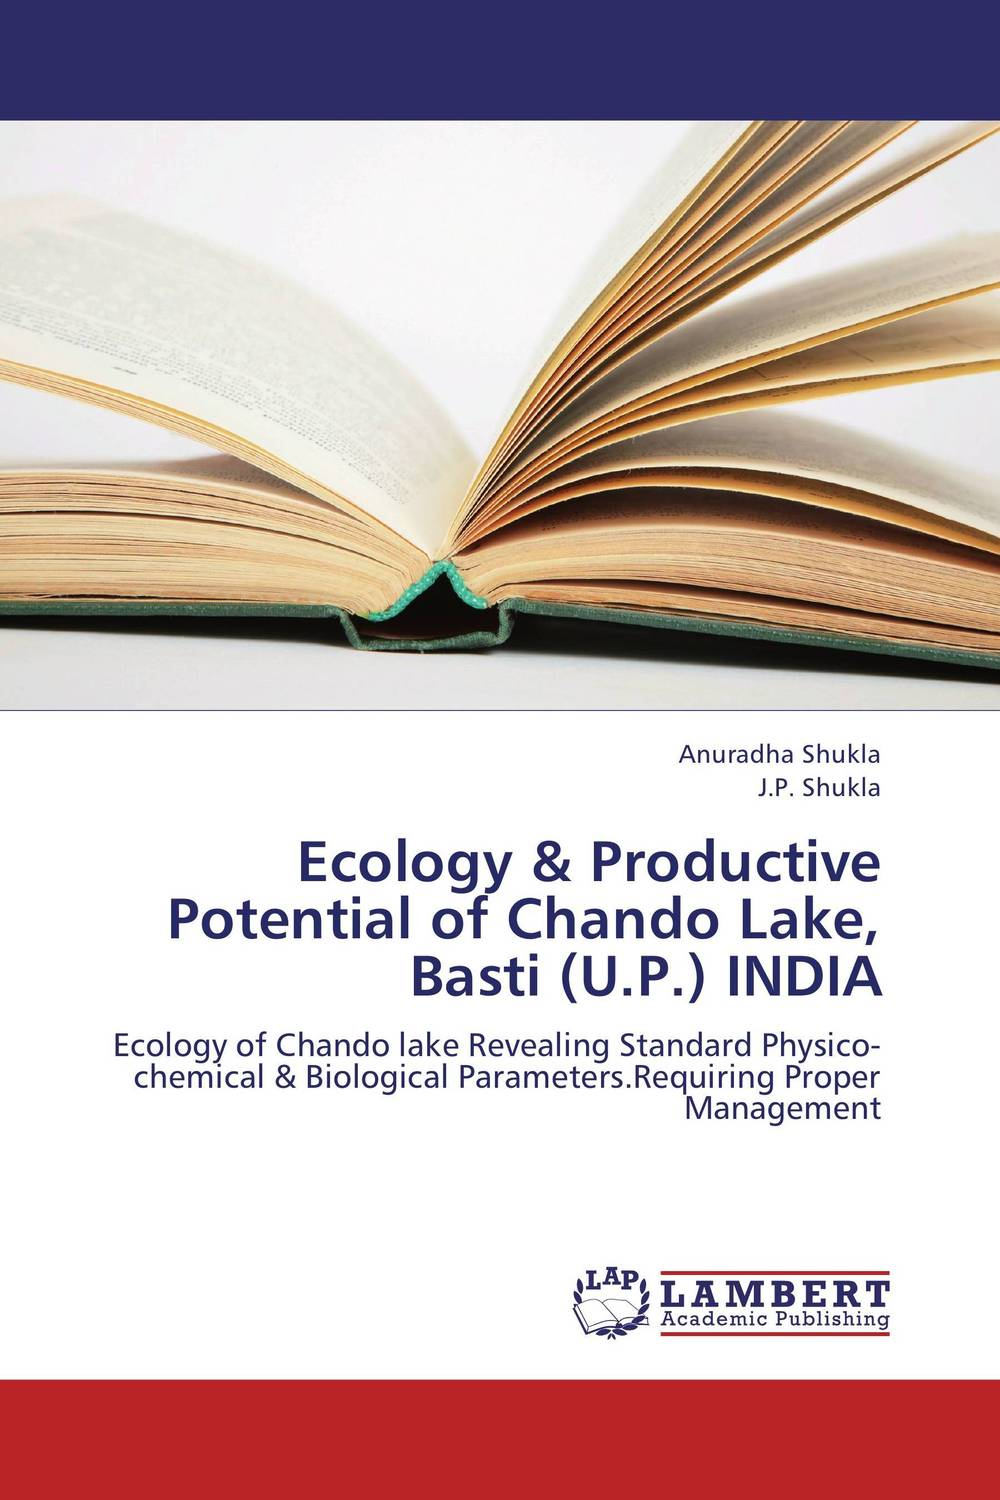 Ecology & Productive Potential of Chando Lake, Basti (U.P.) INDIA rakesh kumar production potential of summer mungbean cultivars in india